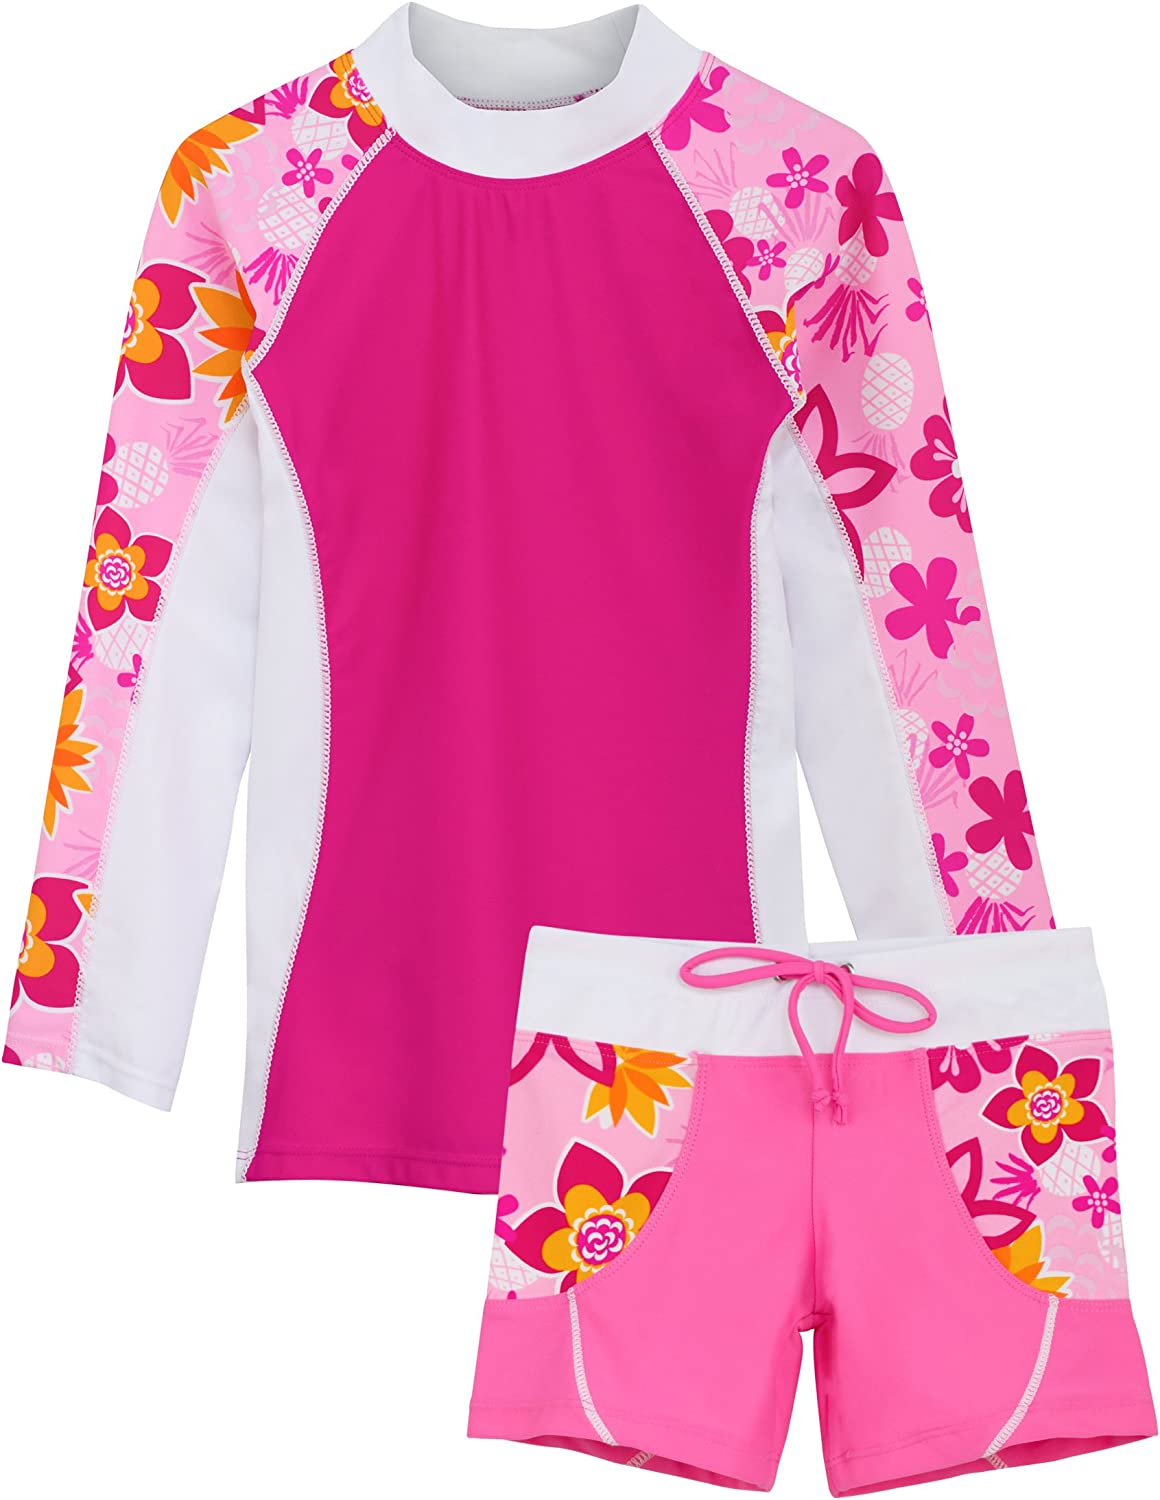 Tuga Girls Two-Piece Long Sleeve Swimsuit Set 2-14 Years UPF 50 Sun Protection